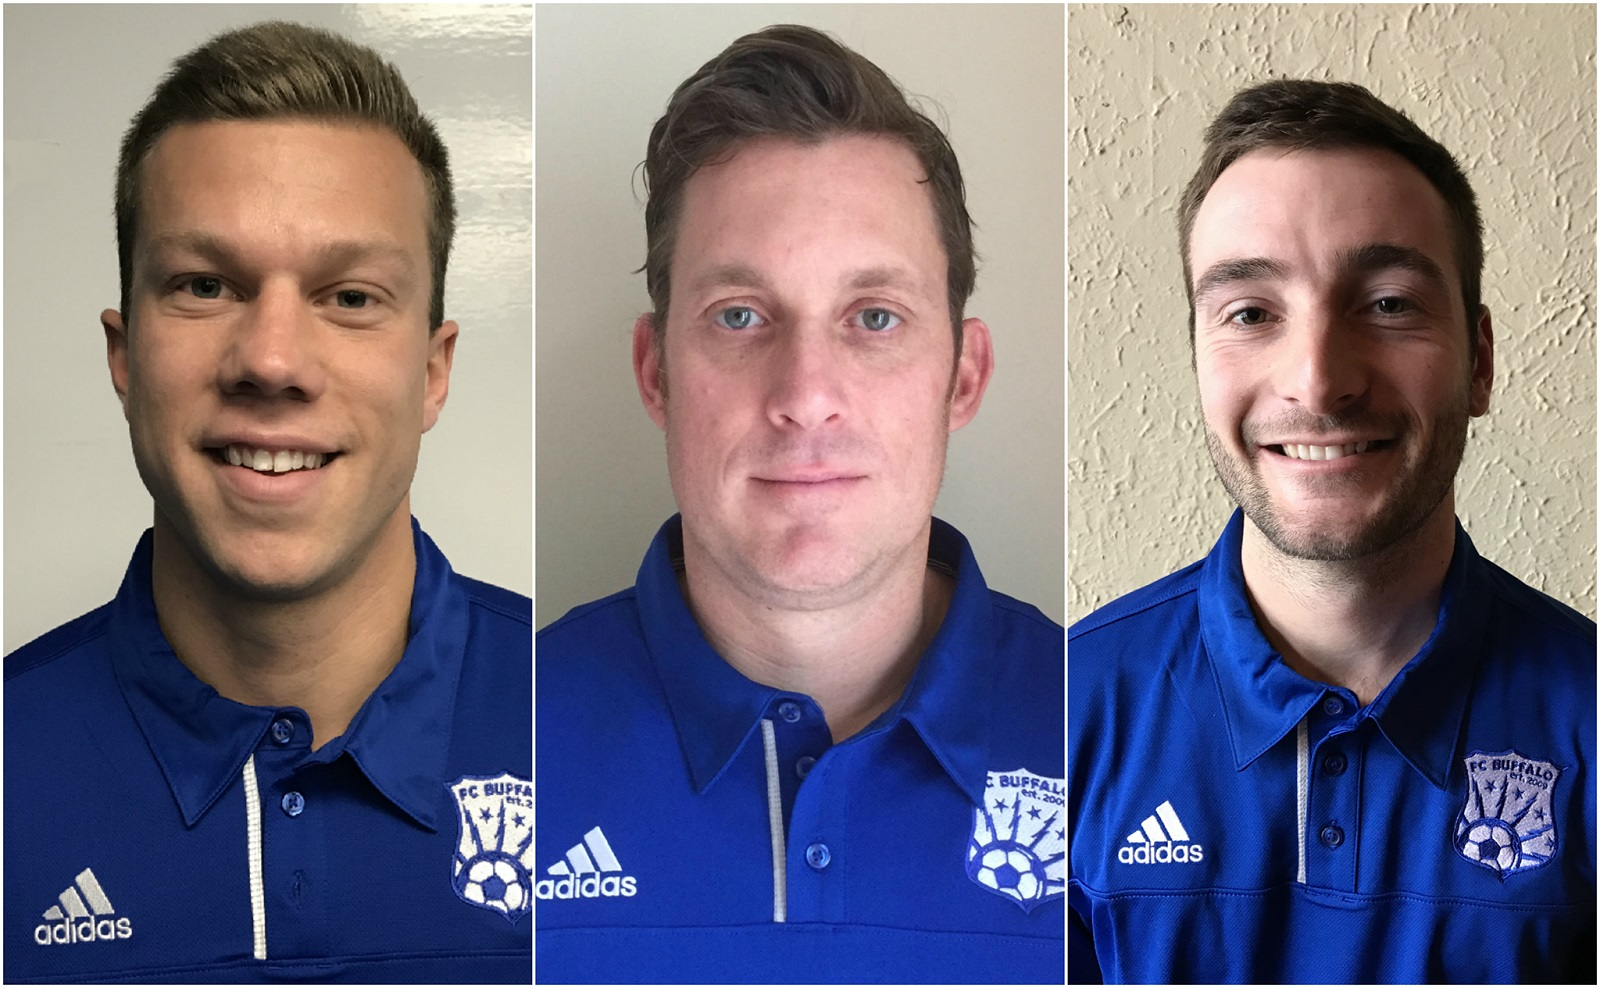 Frank Butcher, middle, is FC Buffalo's new head coach. Casey Derkacz, left, and John Grabowski, right, are his assistants. (via FC Buffalo)